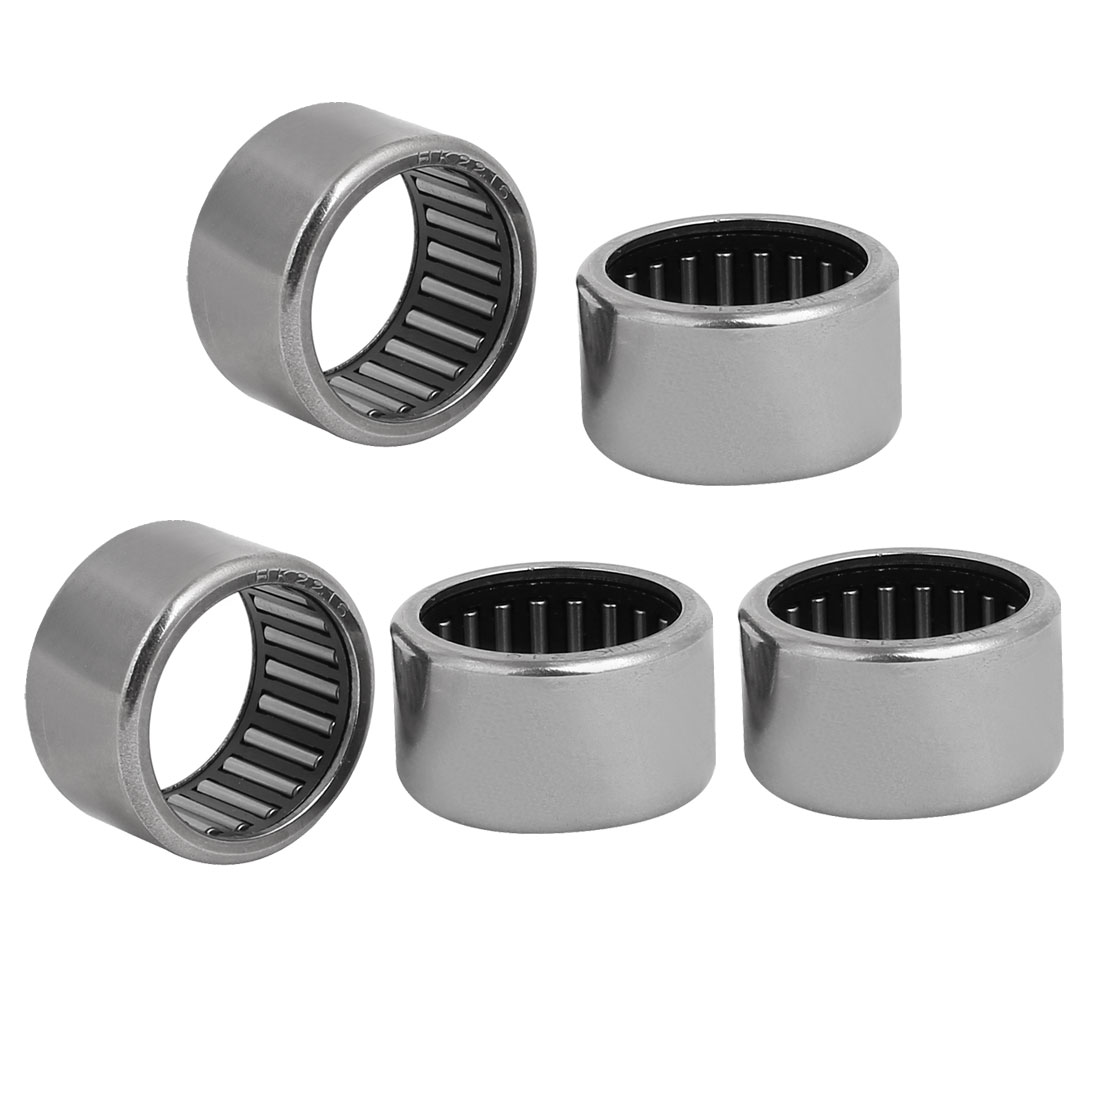 HK2216 22mm x 28mm x 16mm Full Complement Drawn Cup Needle Roller Bearing 5pcs